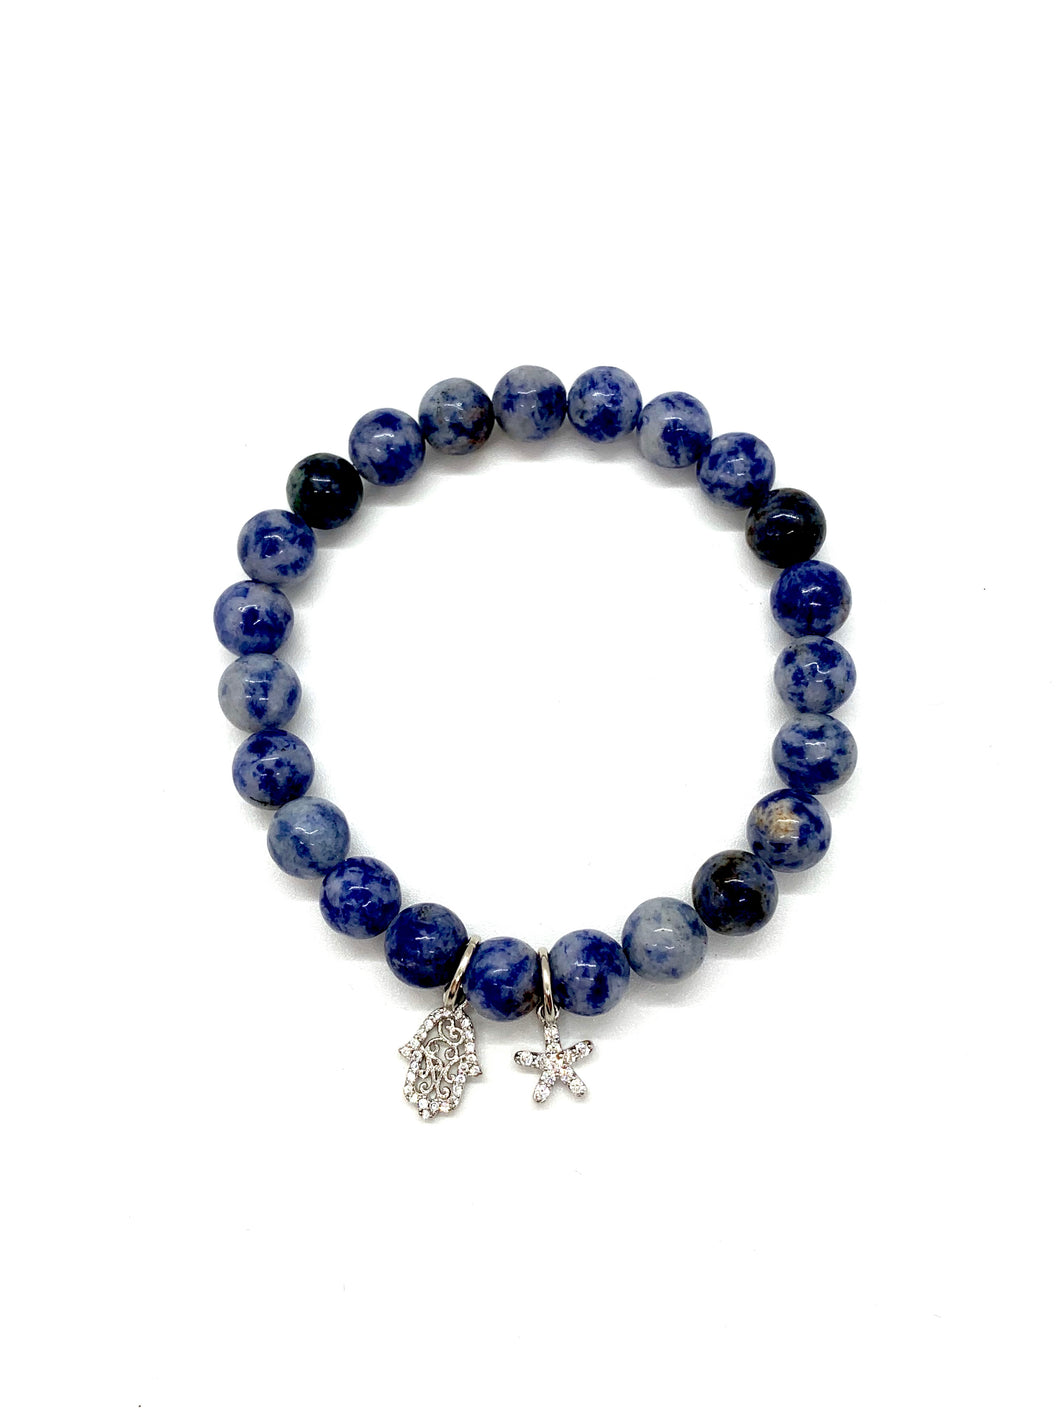 Hamsa & Starfish Charm Bracelet for Protection, Happiness, Luck, Health, Good Fortune & Resiliency